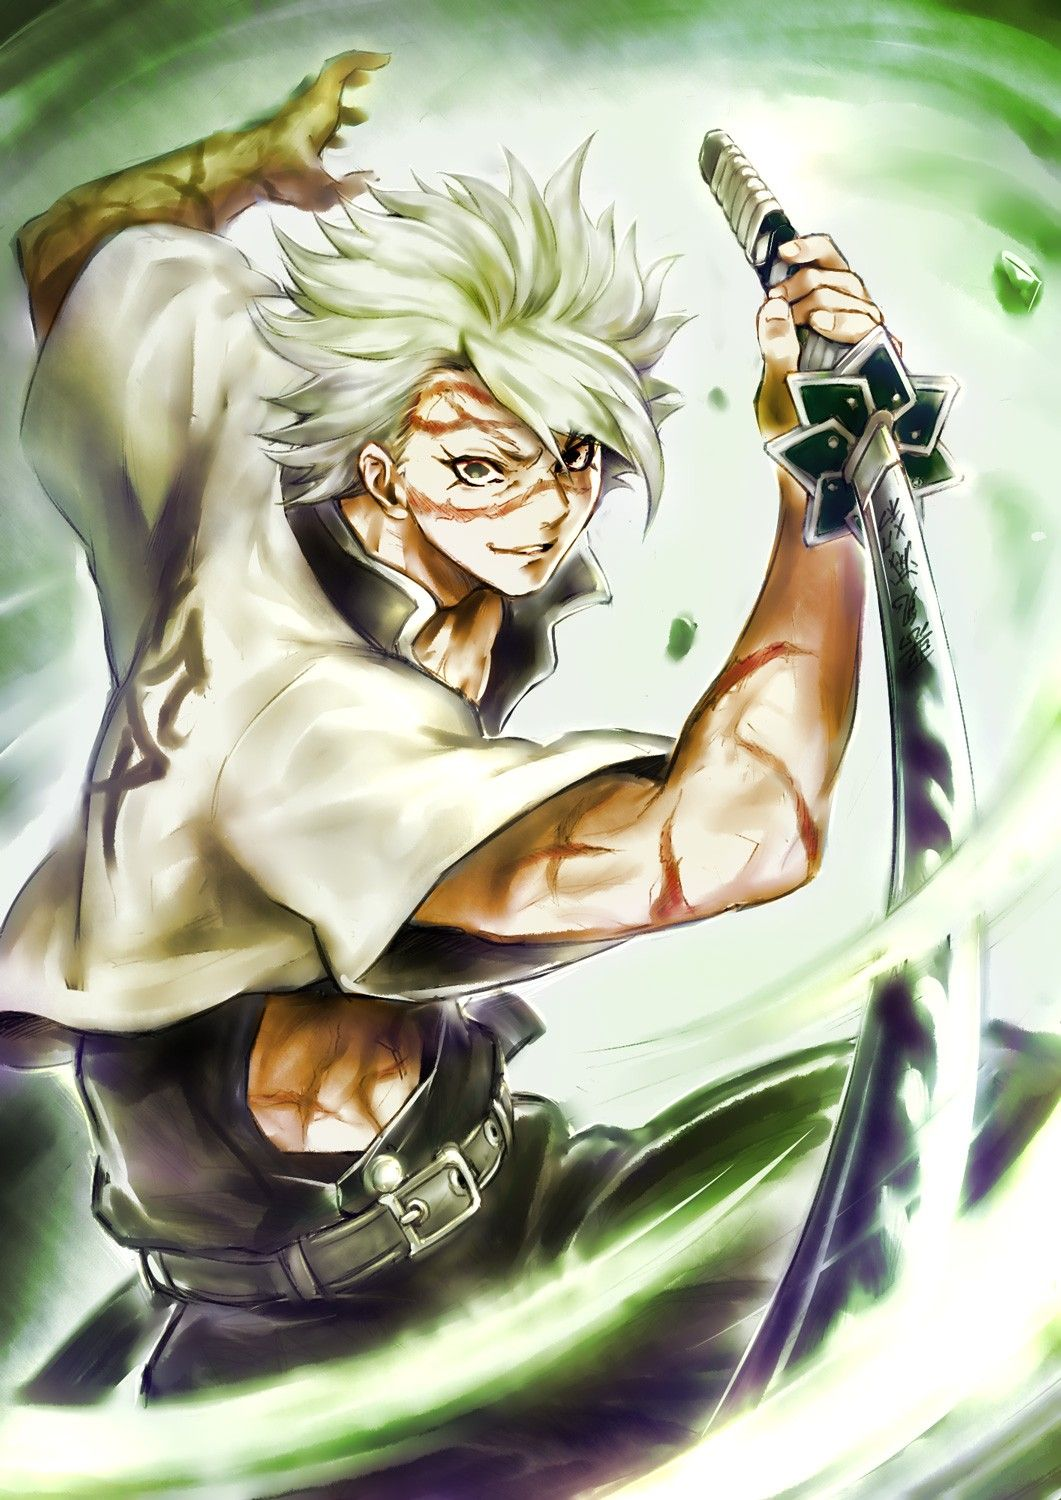 2 days ago· in the anime, hashira are the last line of defence against the demons. Demon Slayer Wind Hashira - Manga